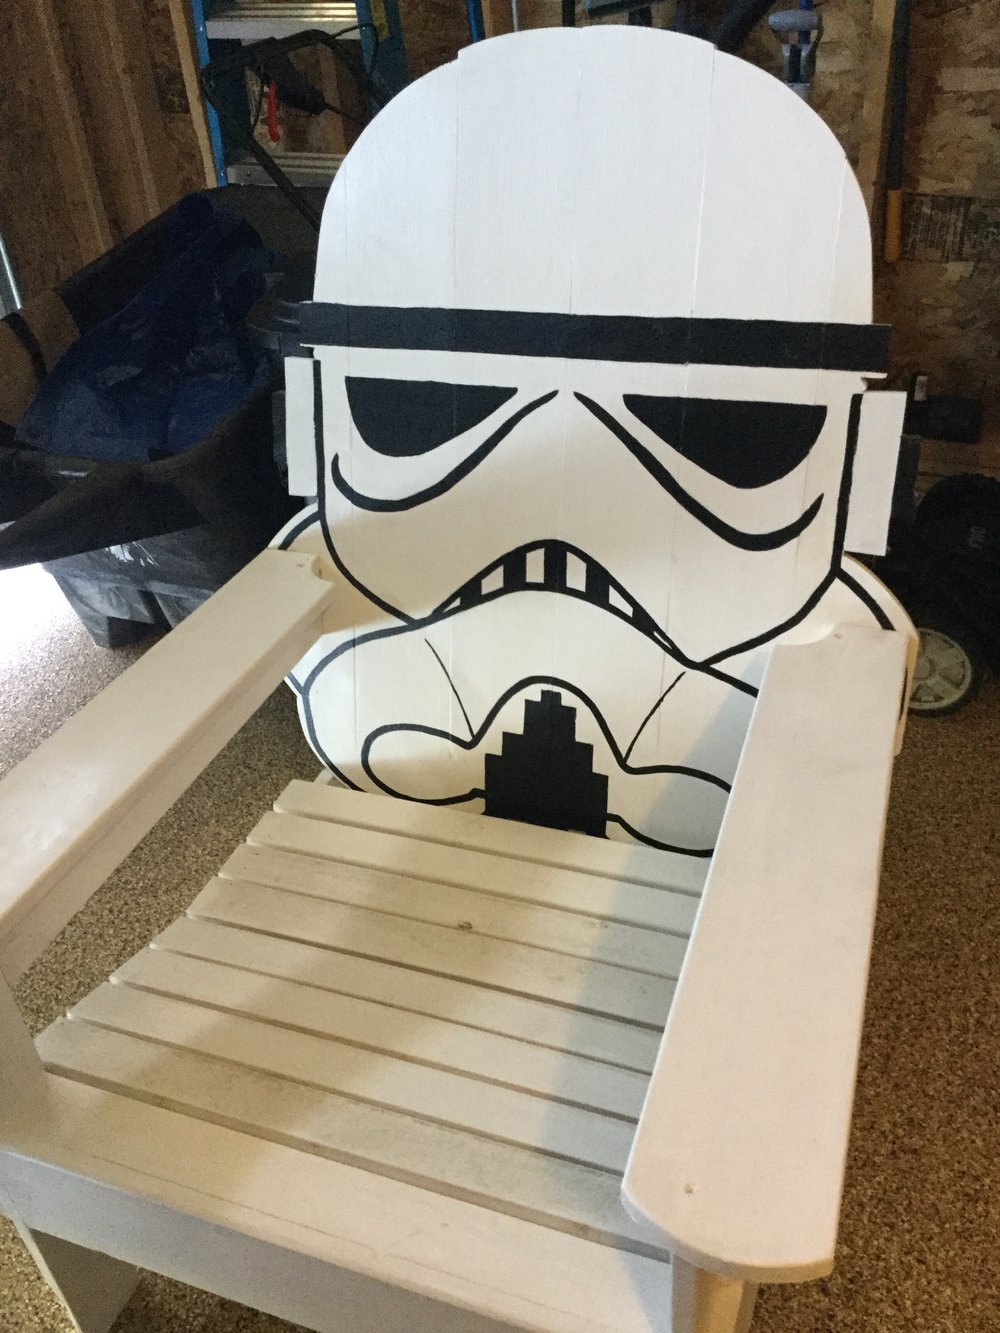 The Chair. - This is the Stormtrooper adirondack chair the eldest Brady boy made me for my birthday and I fully plan to sit in this chair, in my Kylo Ren outfit, and look like a damn boss.